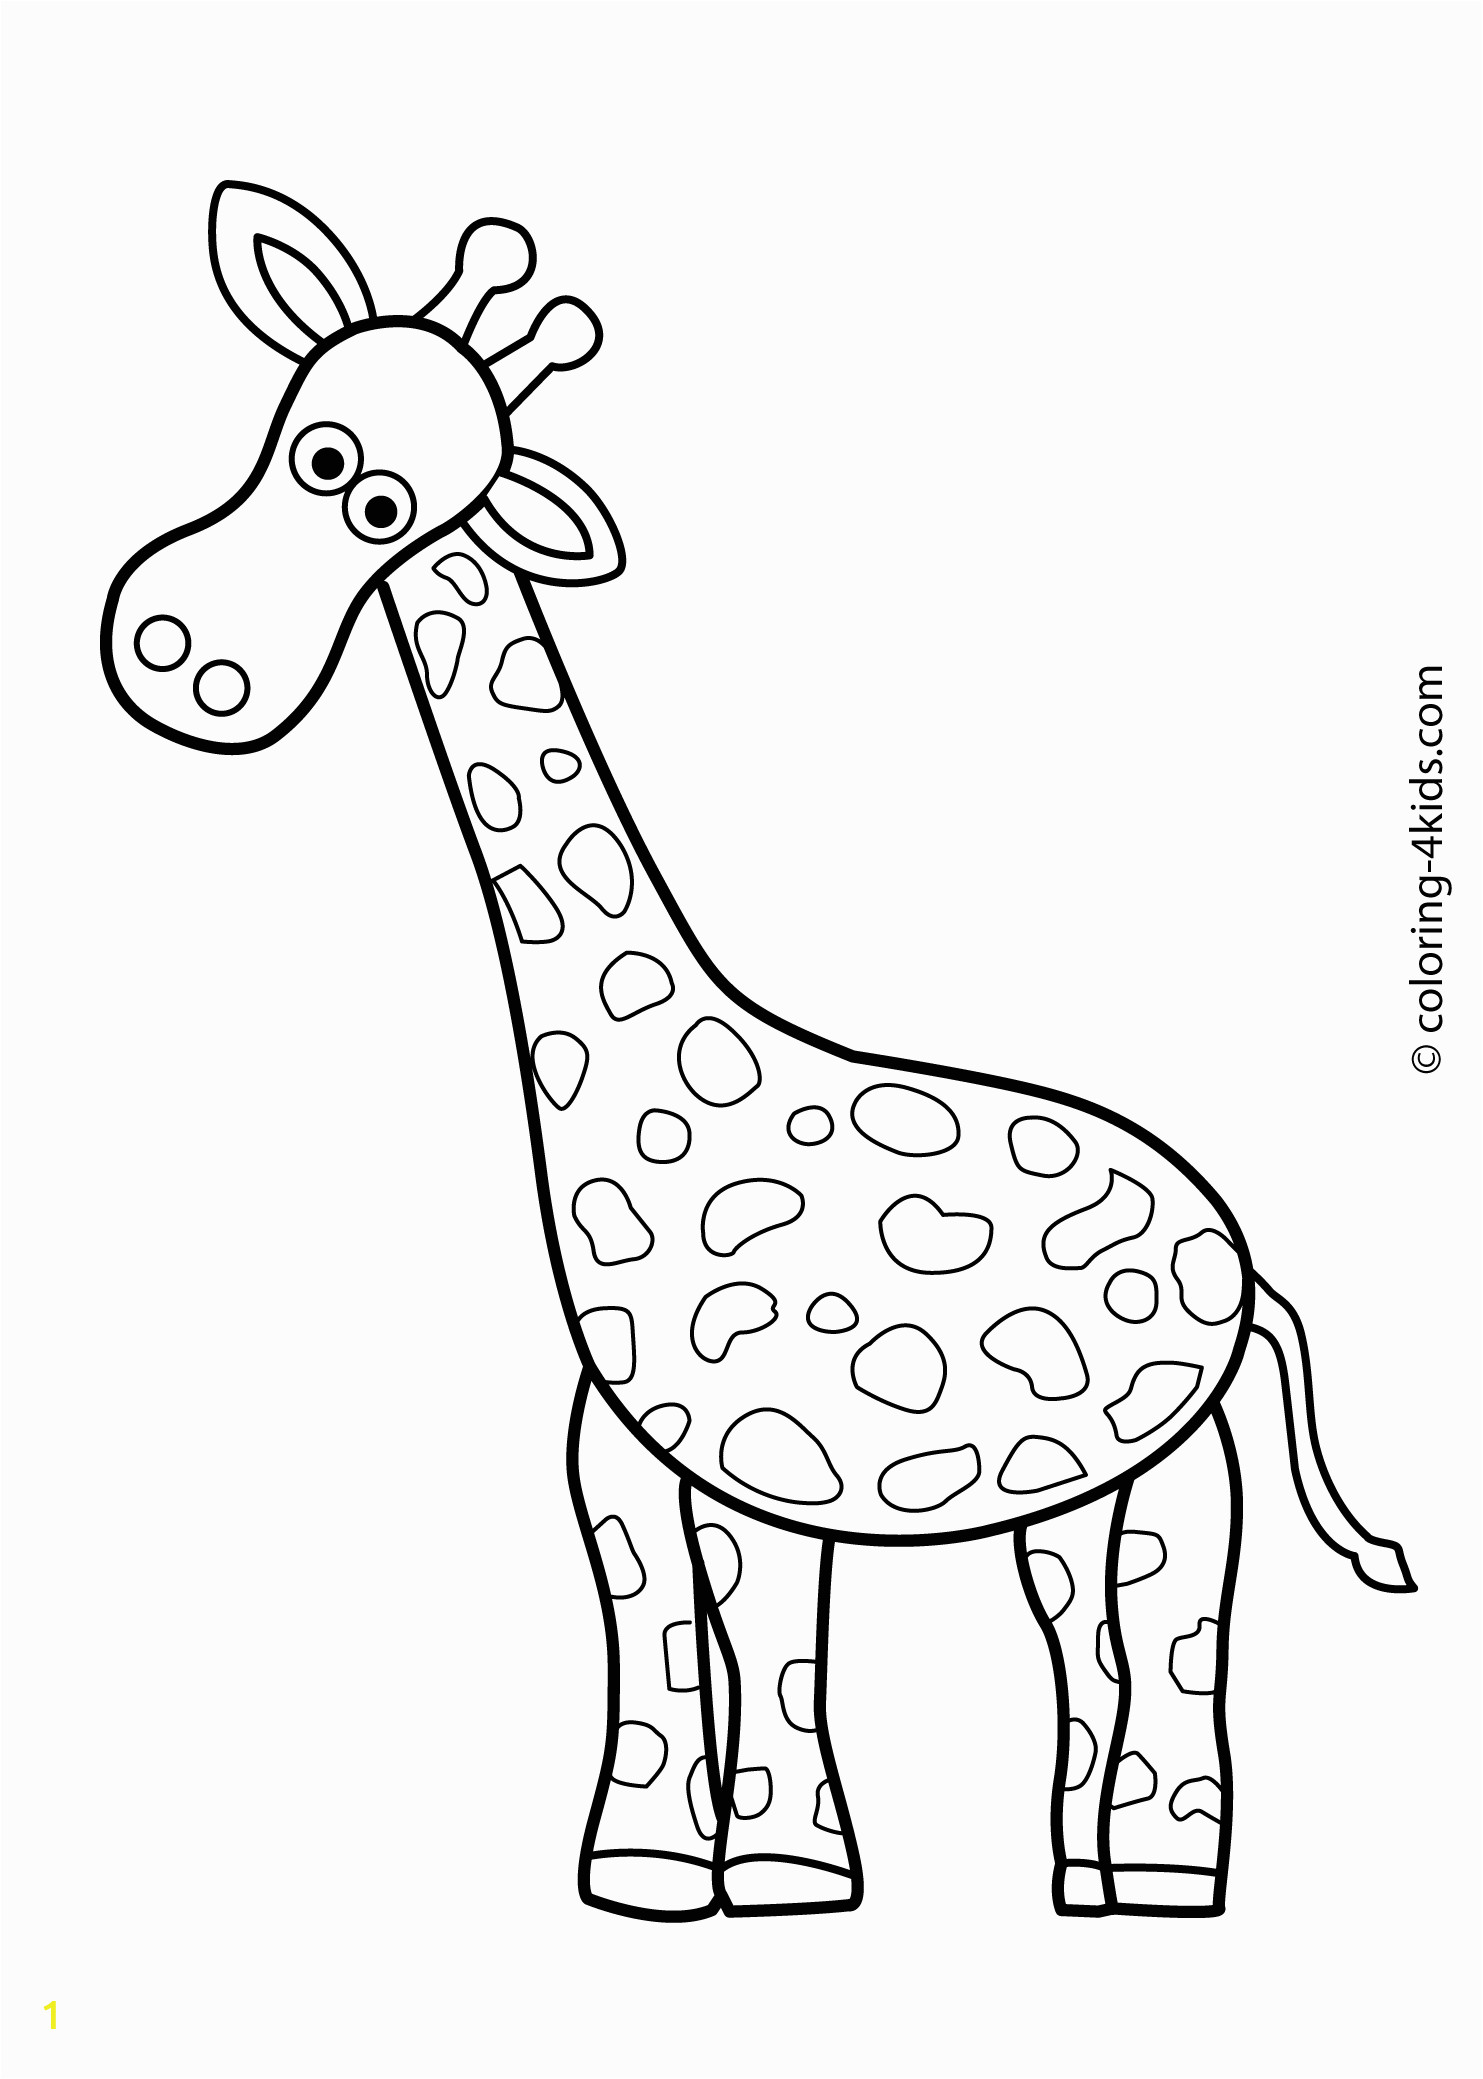 zoo animal coloring pages for preschool free printable zoo coloring pages for kids zoo preschool coloring for animal pages